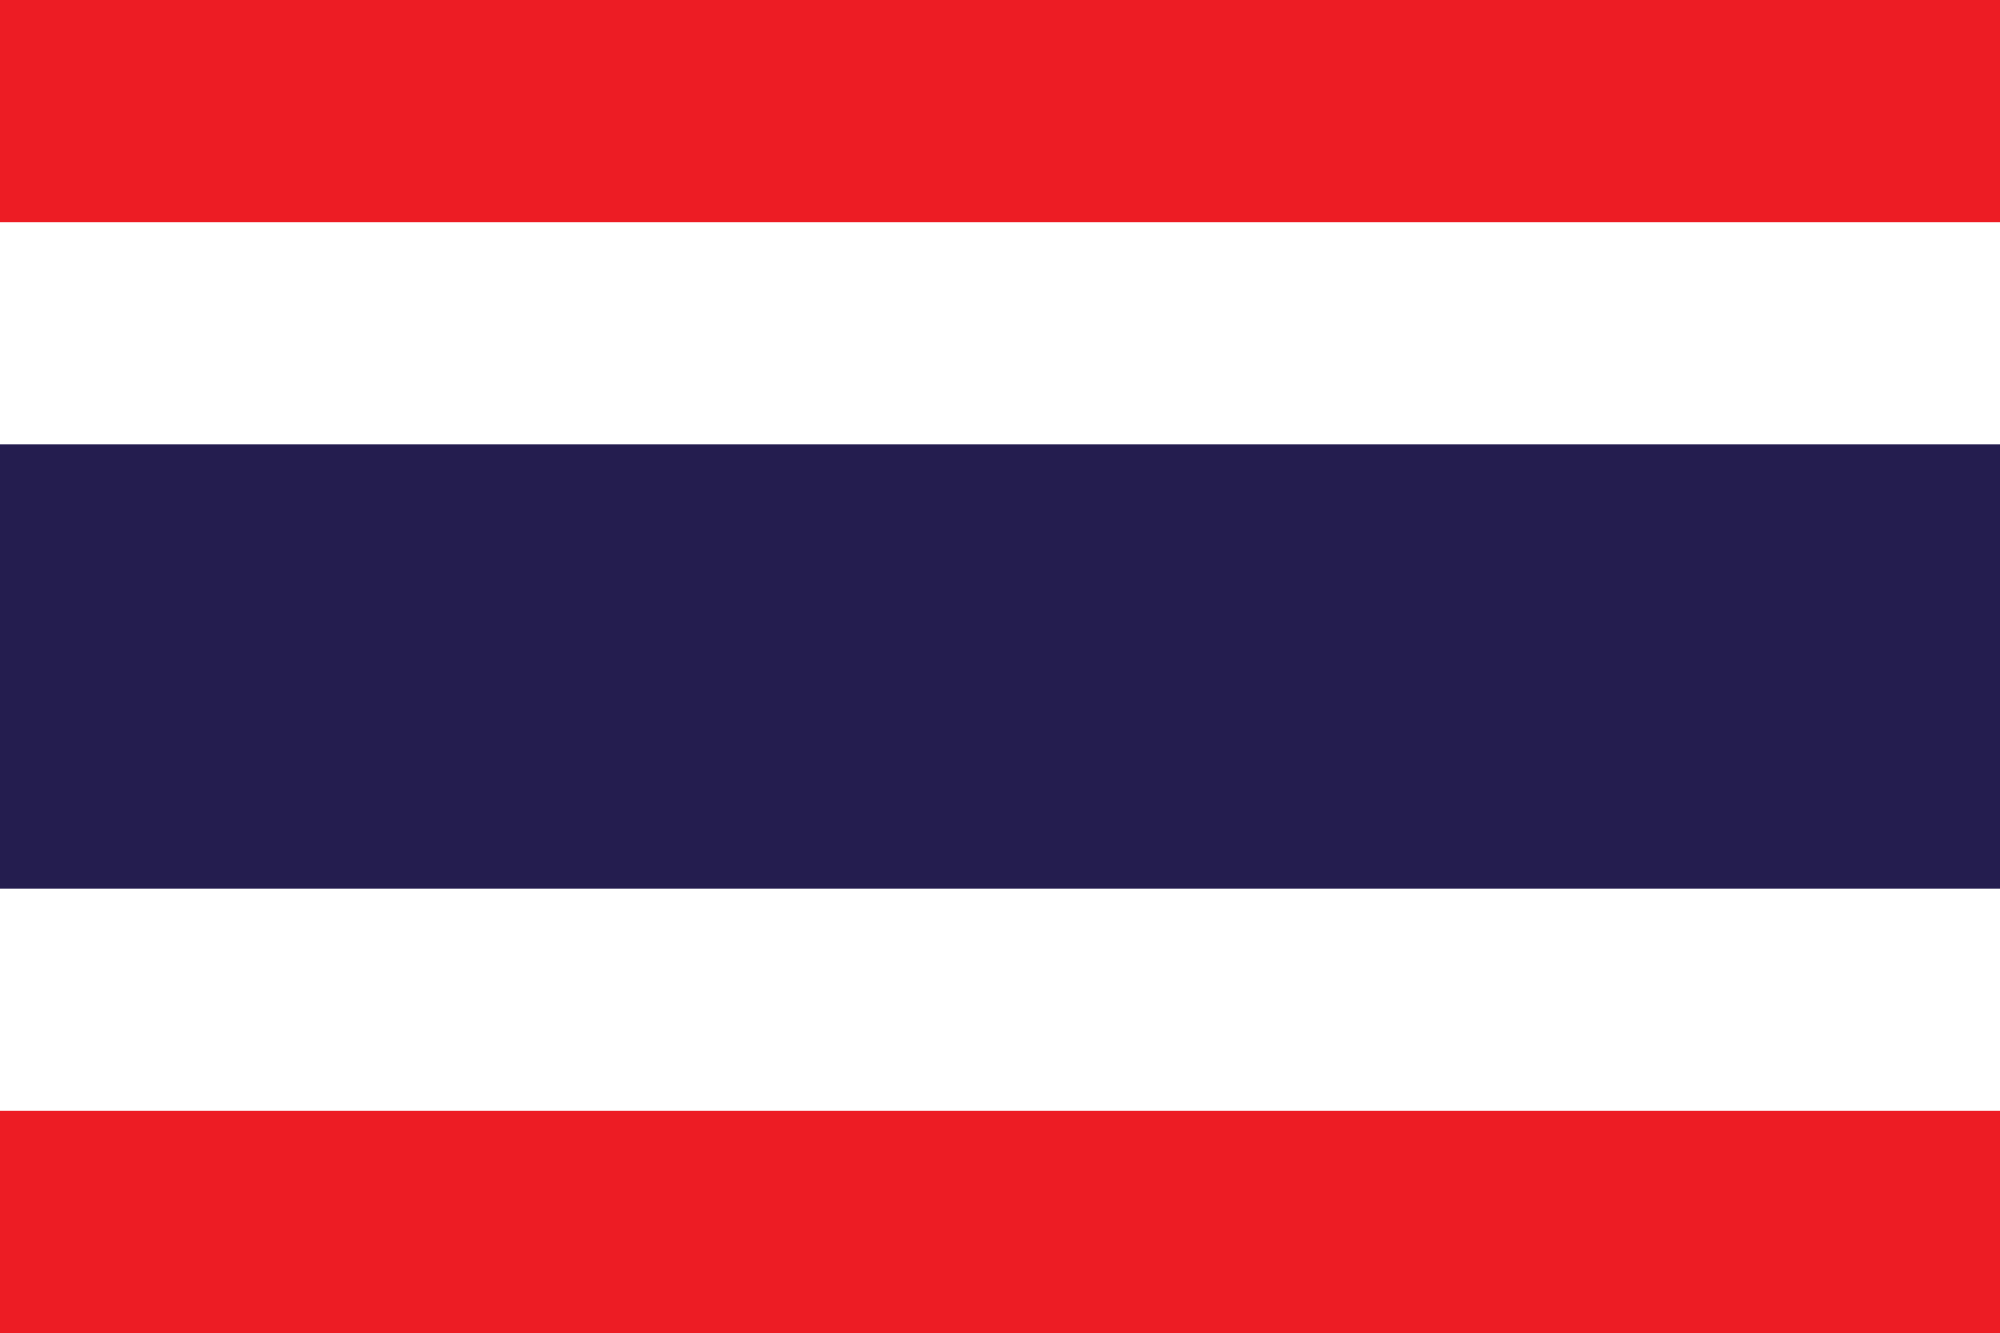 Flag of Thailand.svg